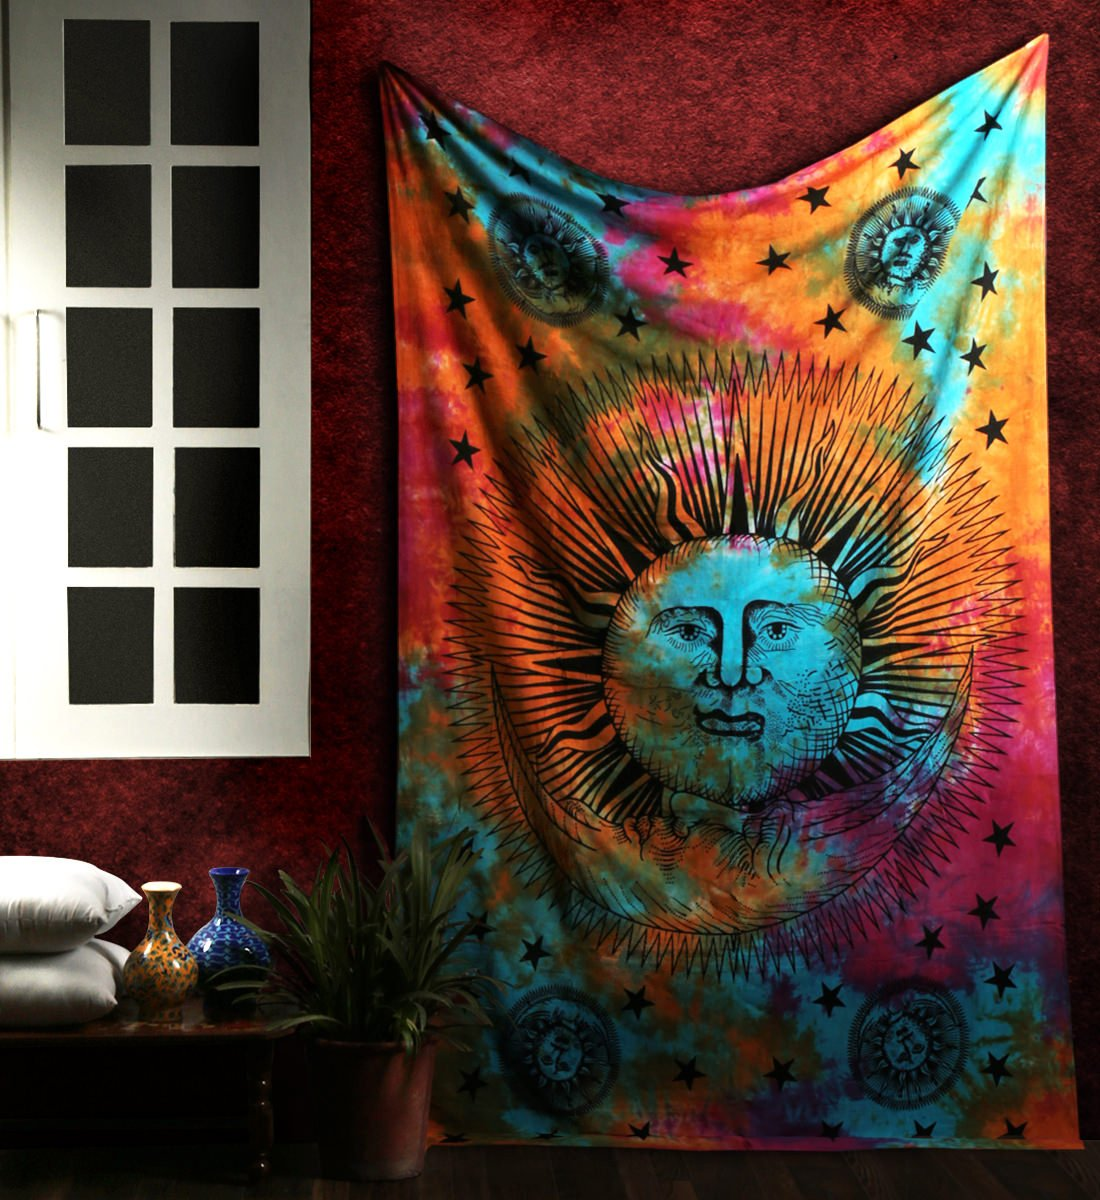 1 X Psychedelic Celestial Sun Moon Stars Tie Dye Tapestry Wall hanging Room Decor Hanging Hippie Hippy Wall Hanging, Indian Tapestry, Sun-moon Tapestry, Celestial Tapestry Bohemian Decor mandala Room Decor Hanging By Rajrang WHG08243